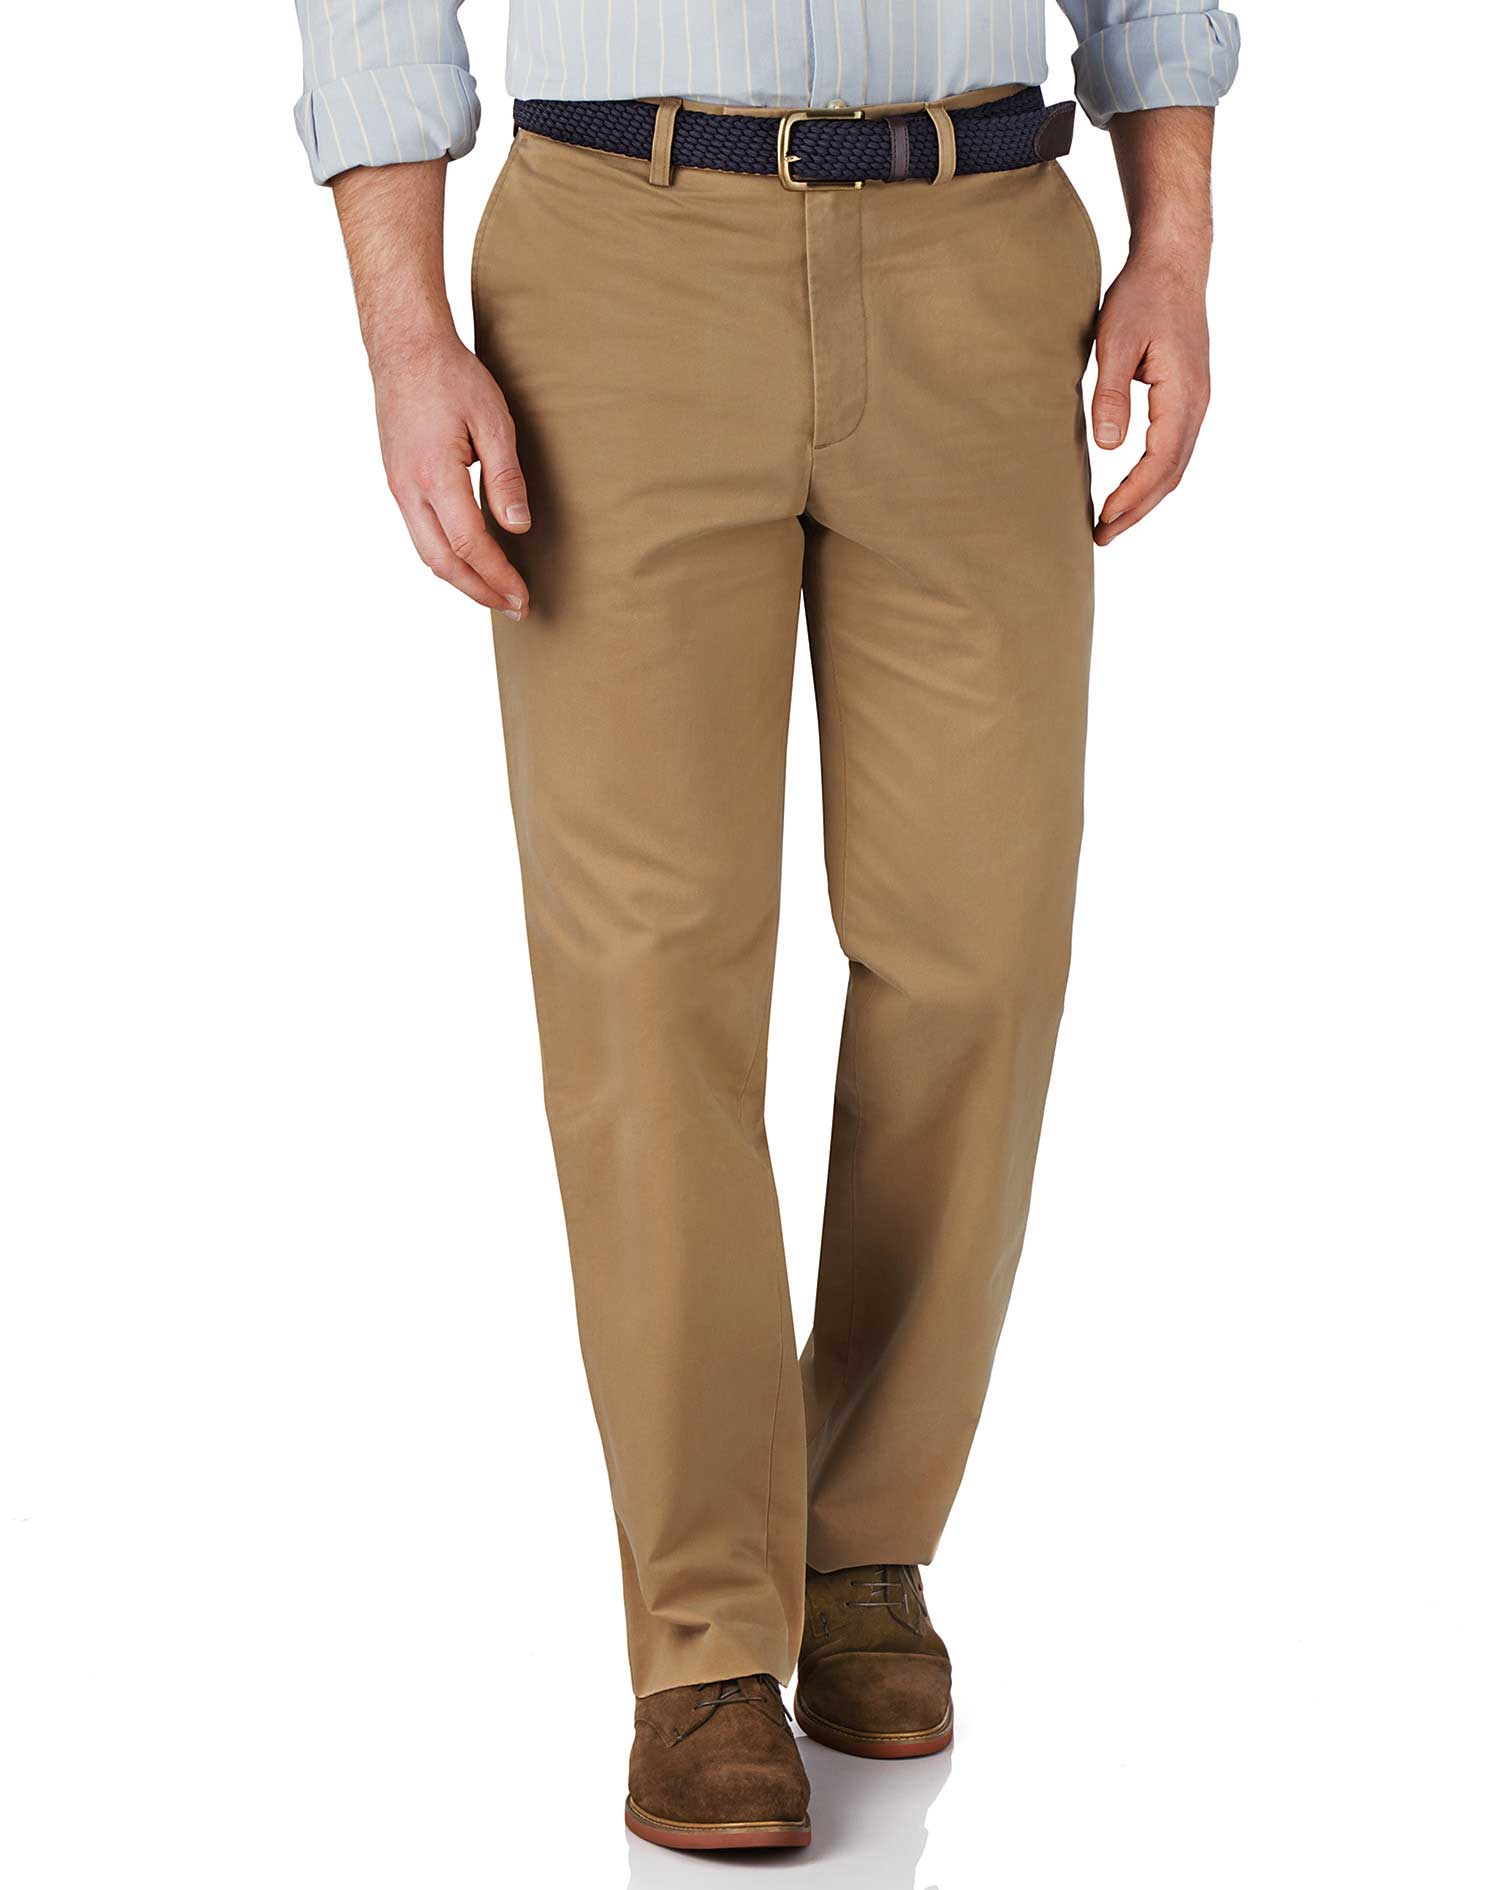 Tan Classic Fit Flat Front Weekend Cotton Chino Trousers Size W34 L34 by Charles Tyrwhitt